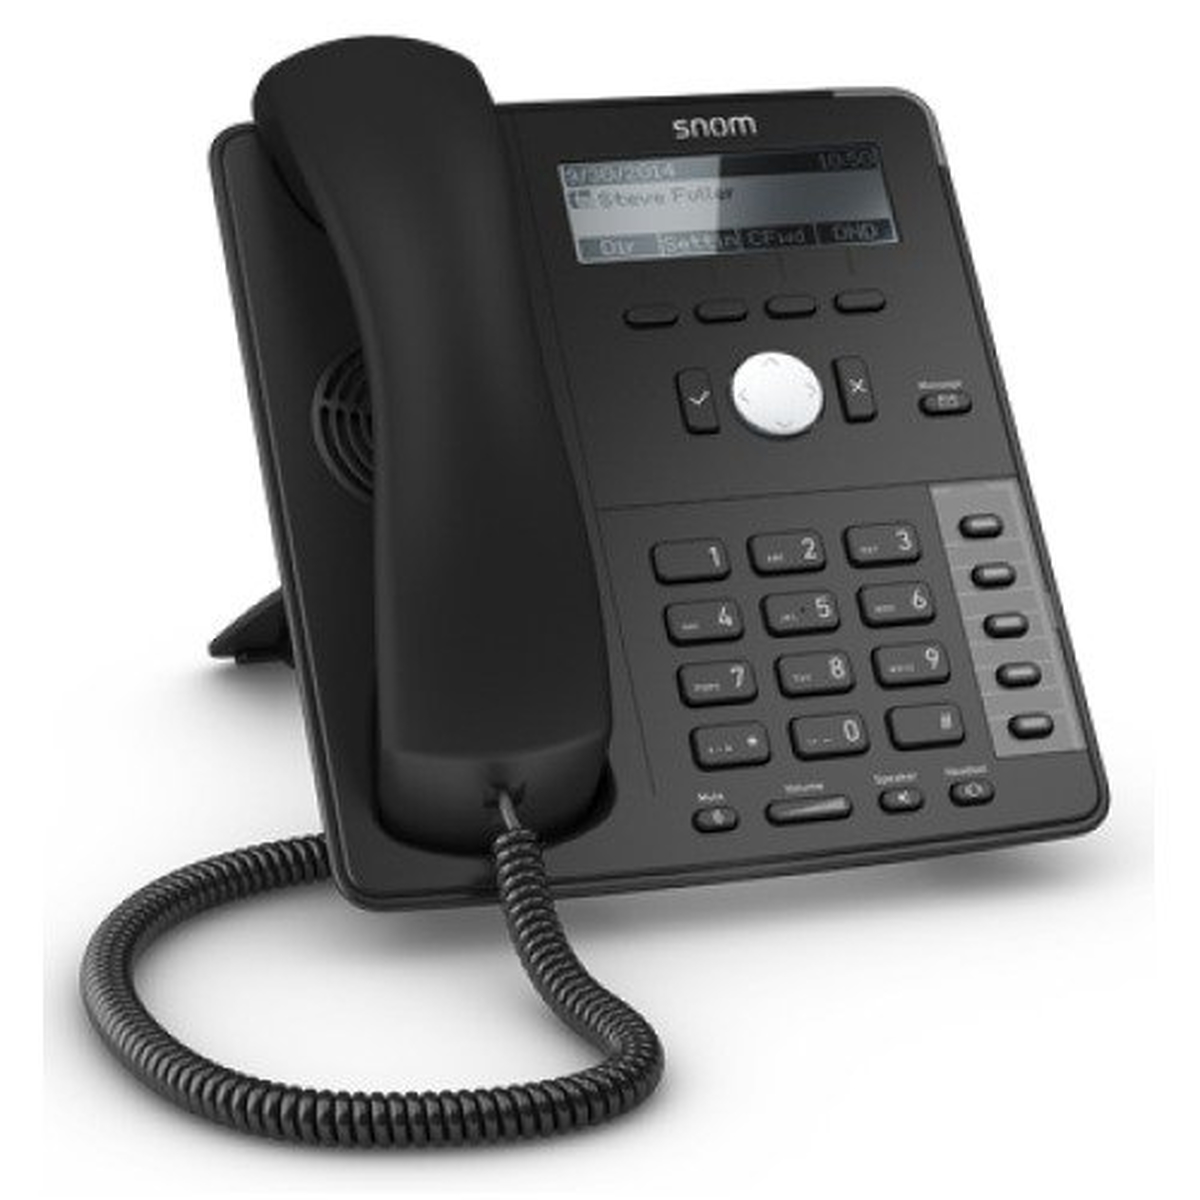 Snom D715 Business Phone Schwarz #wieneu